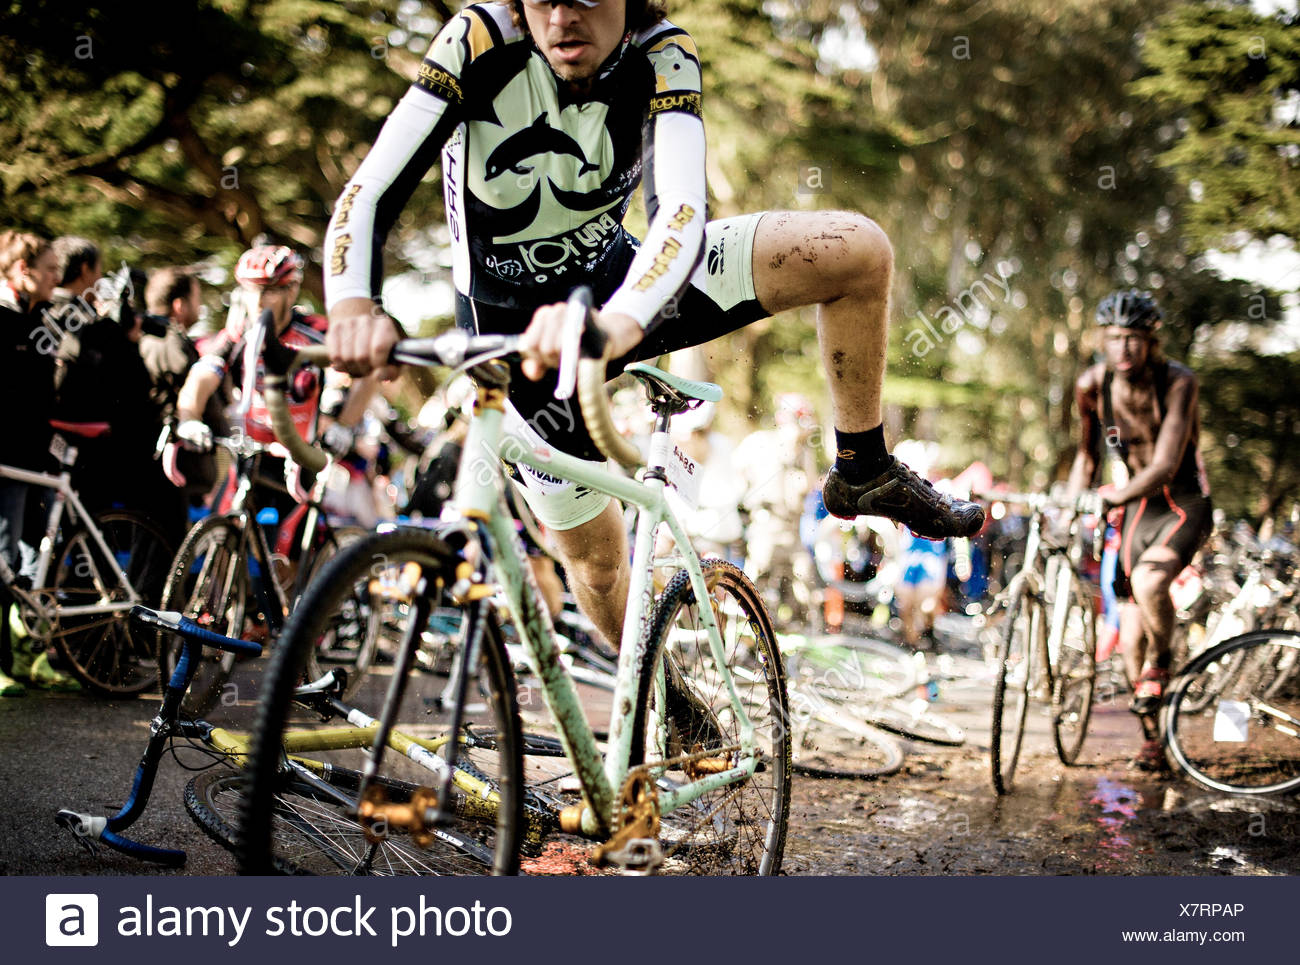 Cyclocross racer grabs bike at race start - Stock Image